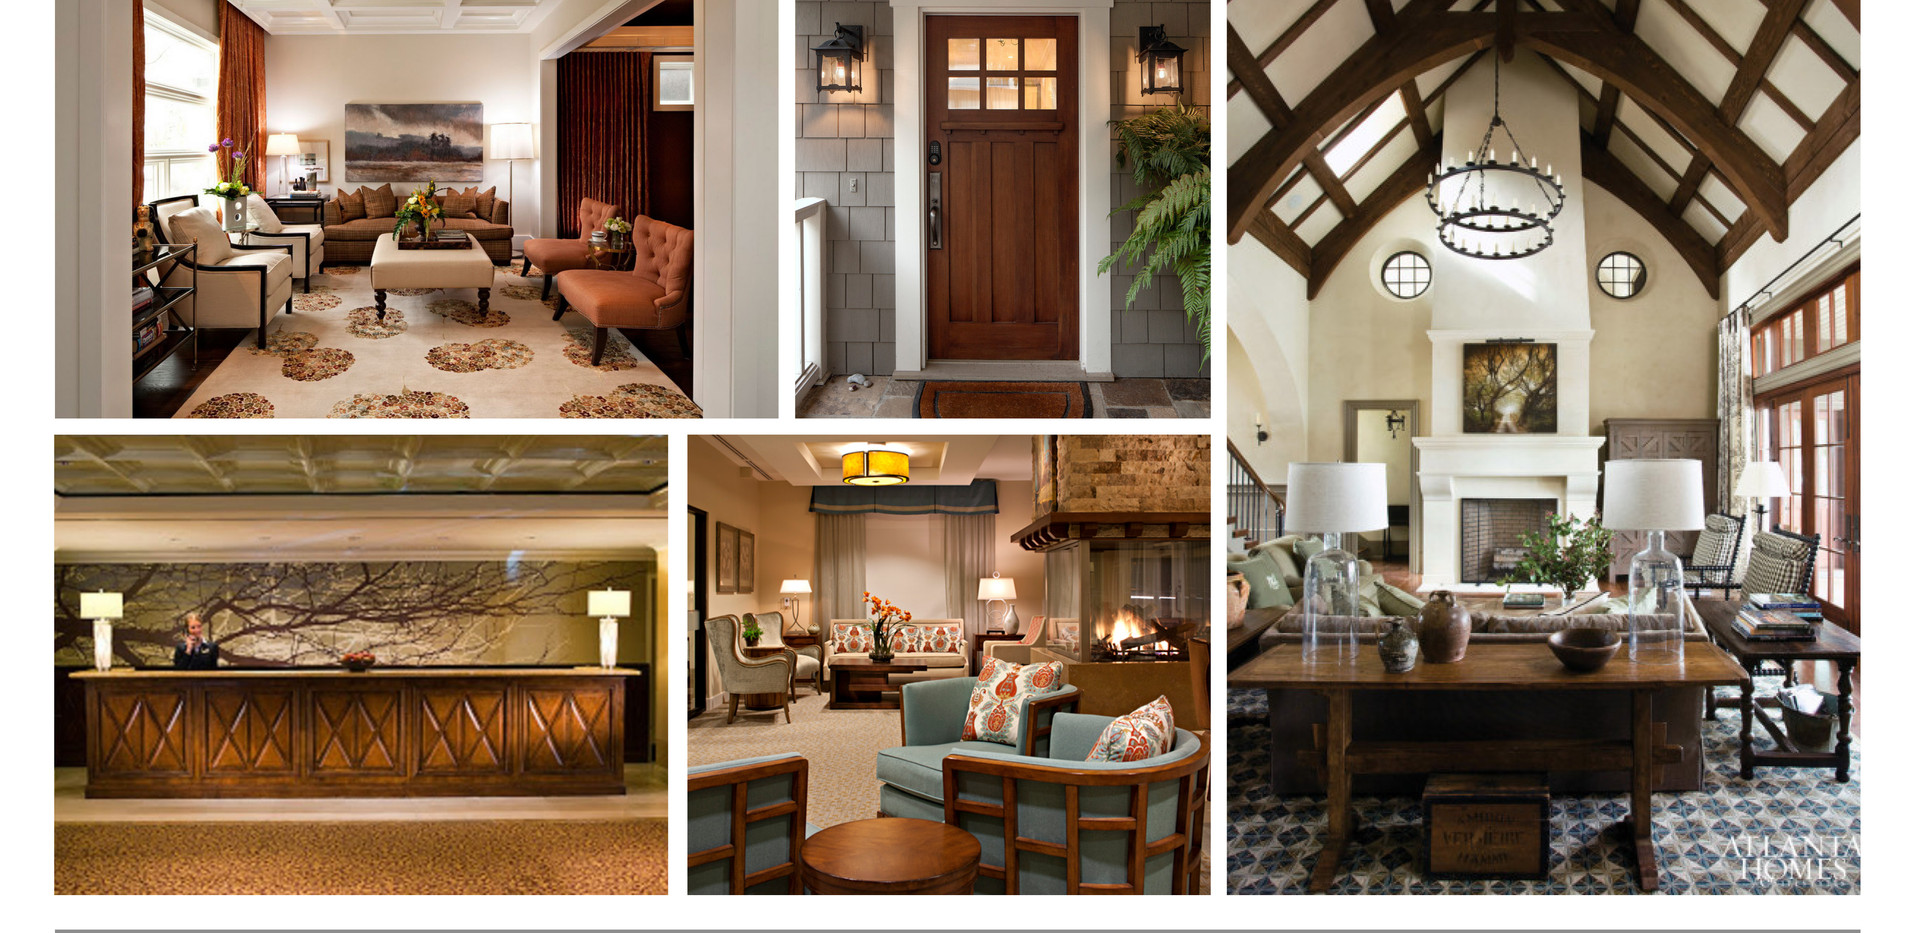 Assisted Living Concept Imagery